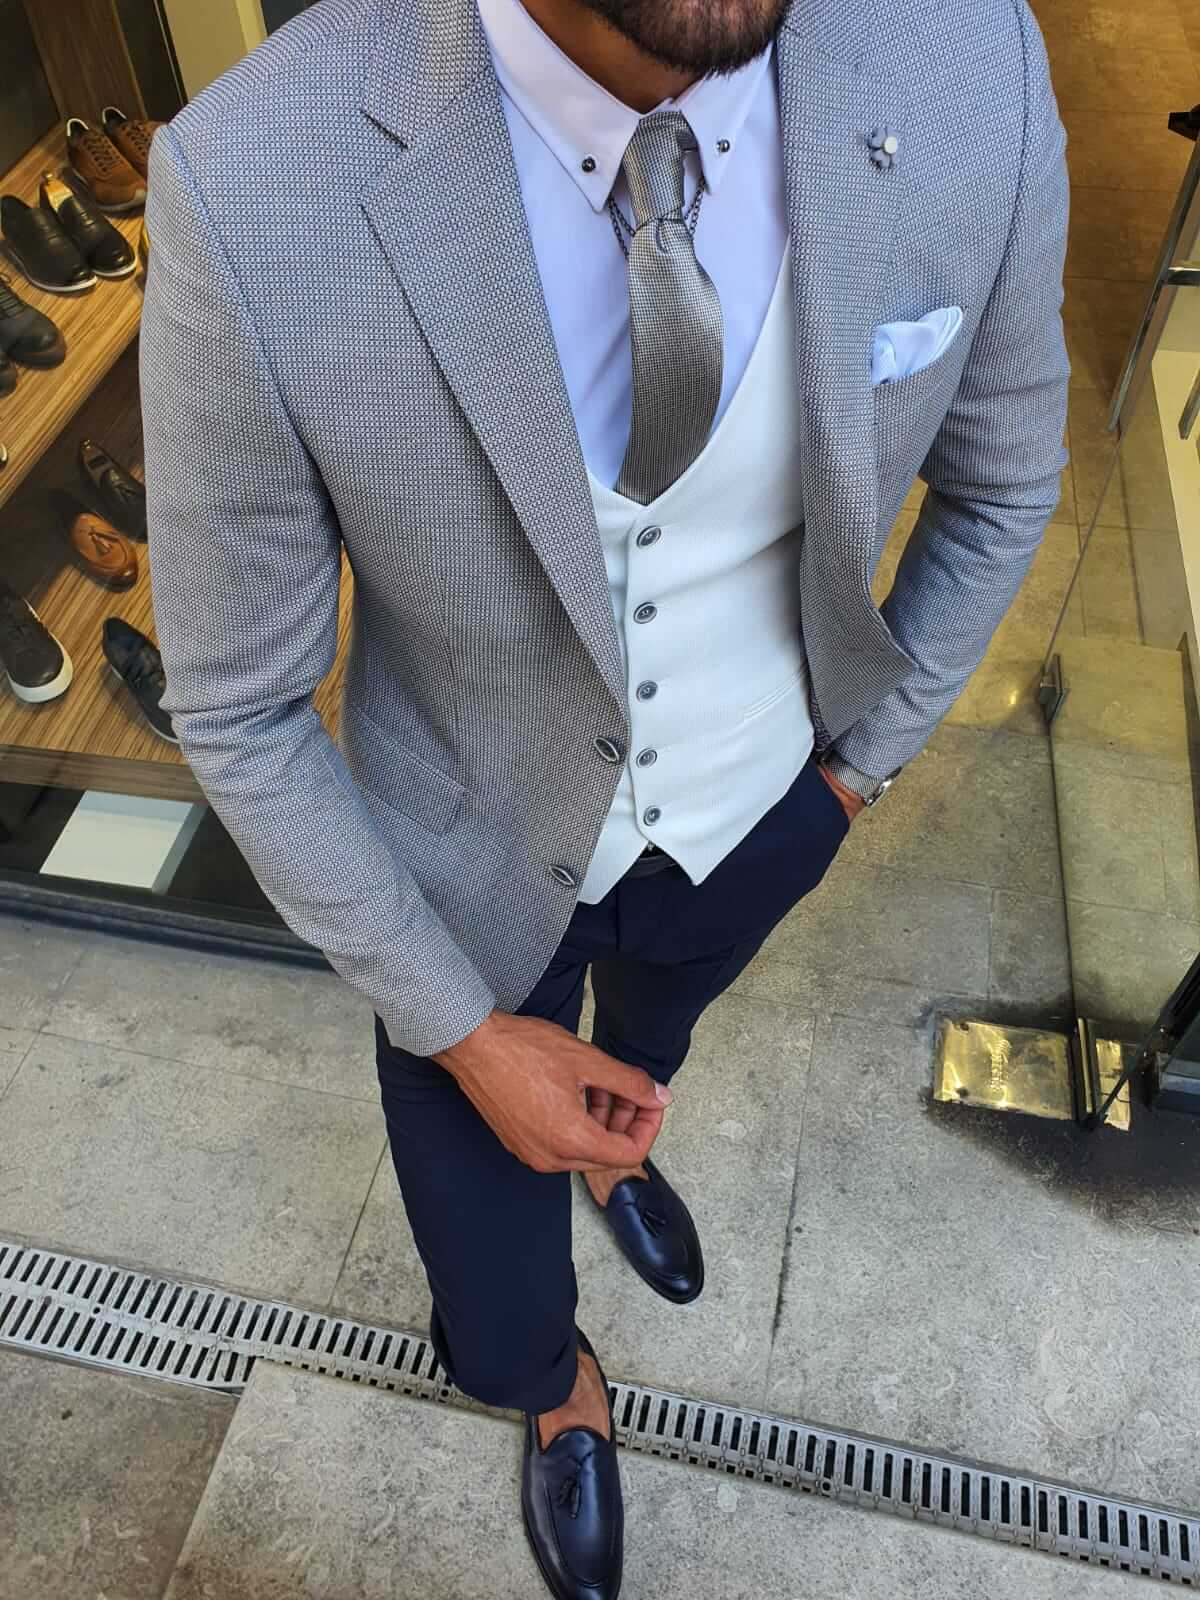 HAMPTON GRAY PLAID SUIT - Hollo Men